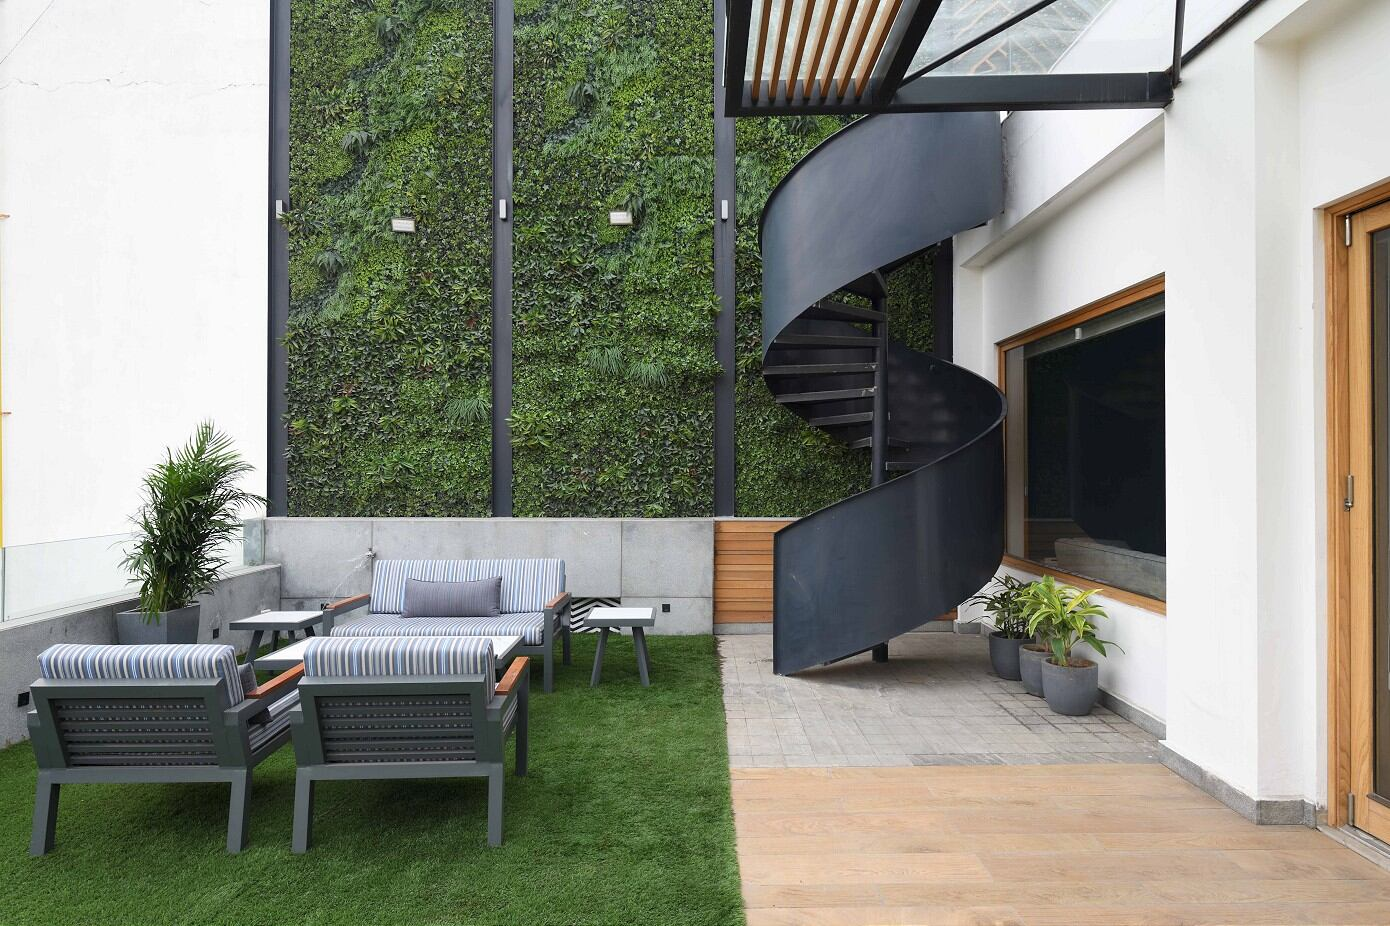 The Screen House by Spaces Architects